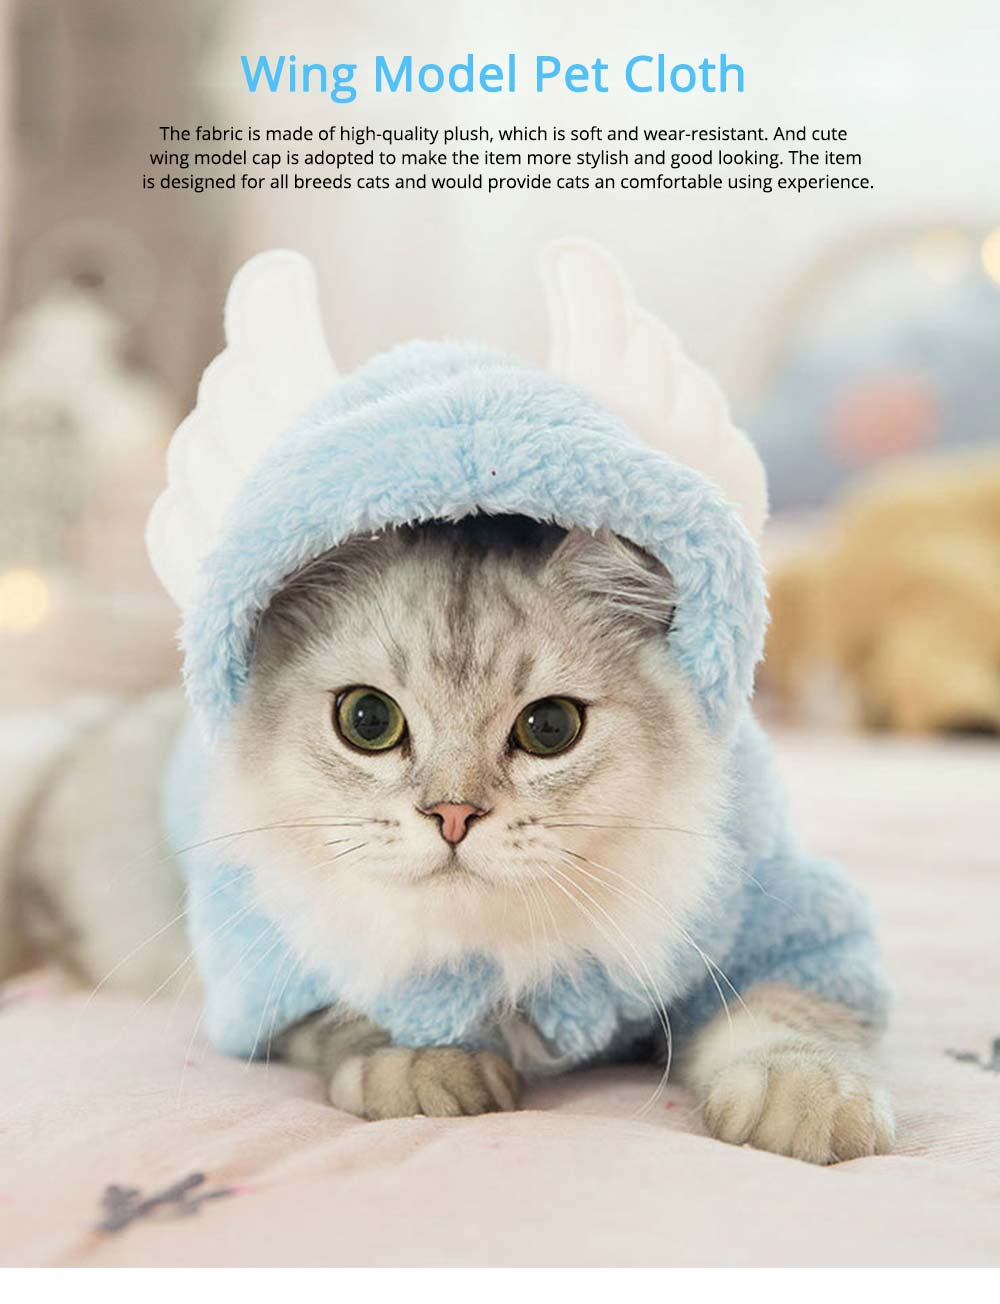 Cute Wing Model Plush Cats Two-feet Pet Clothes, Stylish Pet Clothes Costume Apparel with Animal Ears Especially for Cats 0